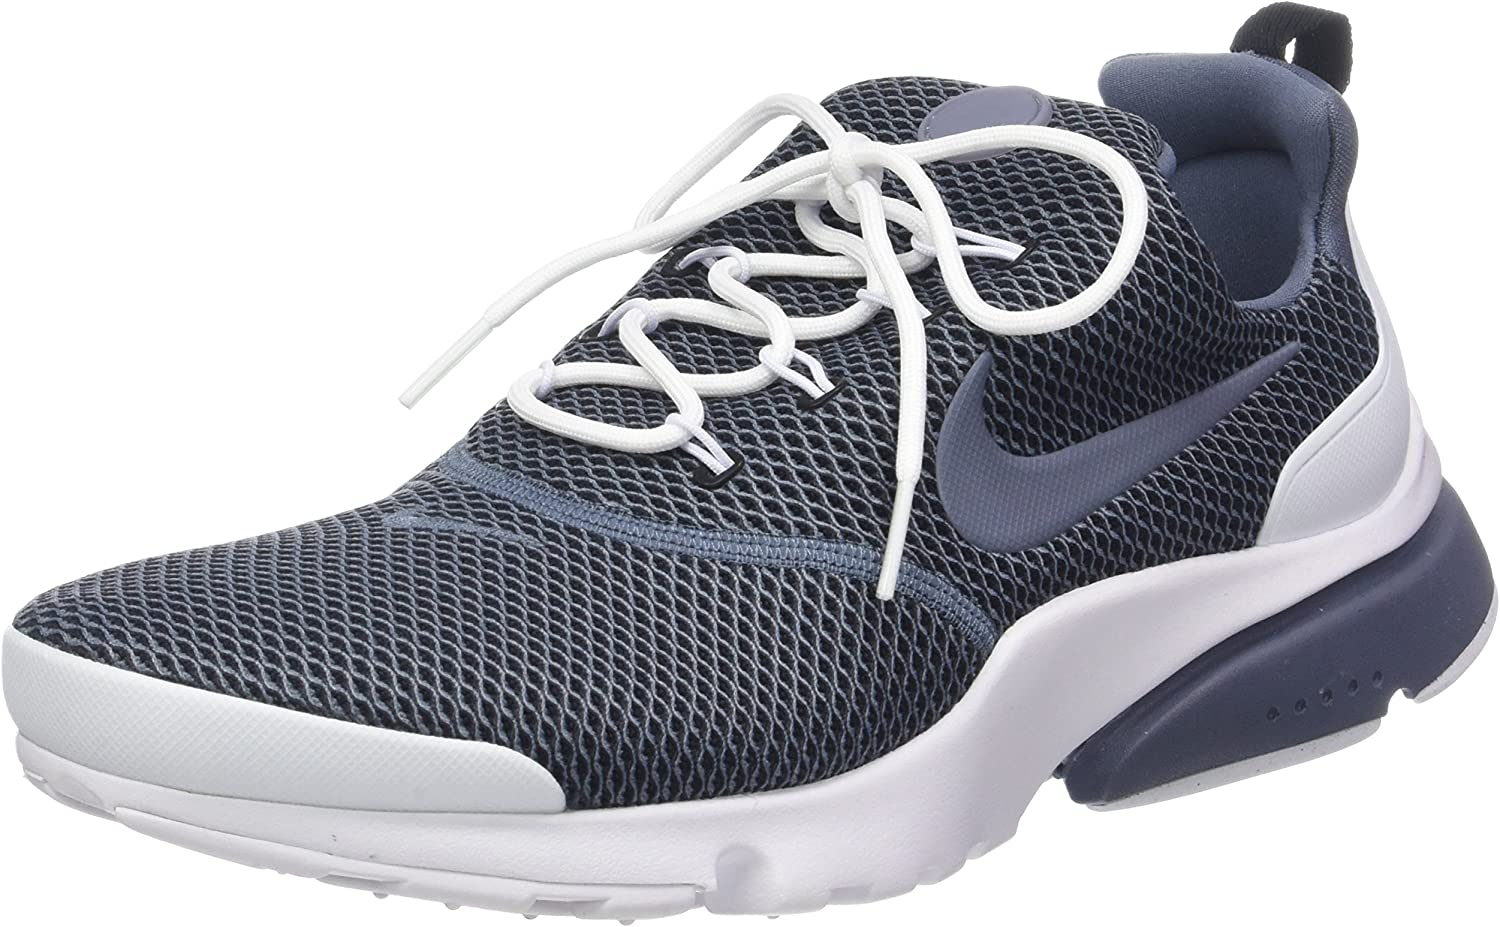 Nike Mens Presto Fly Se Fabric Low Top Lace Up Running Sneaker